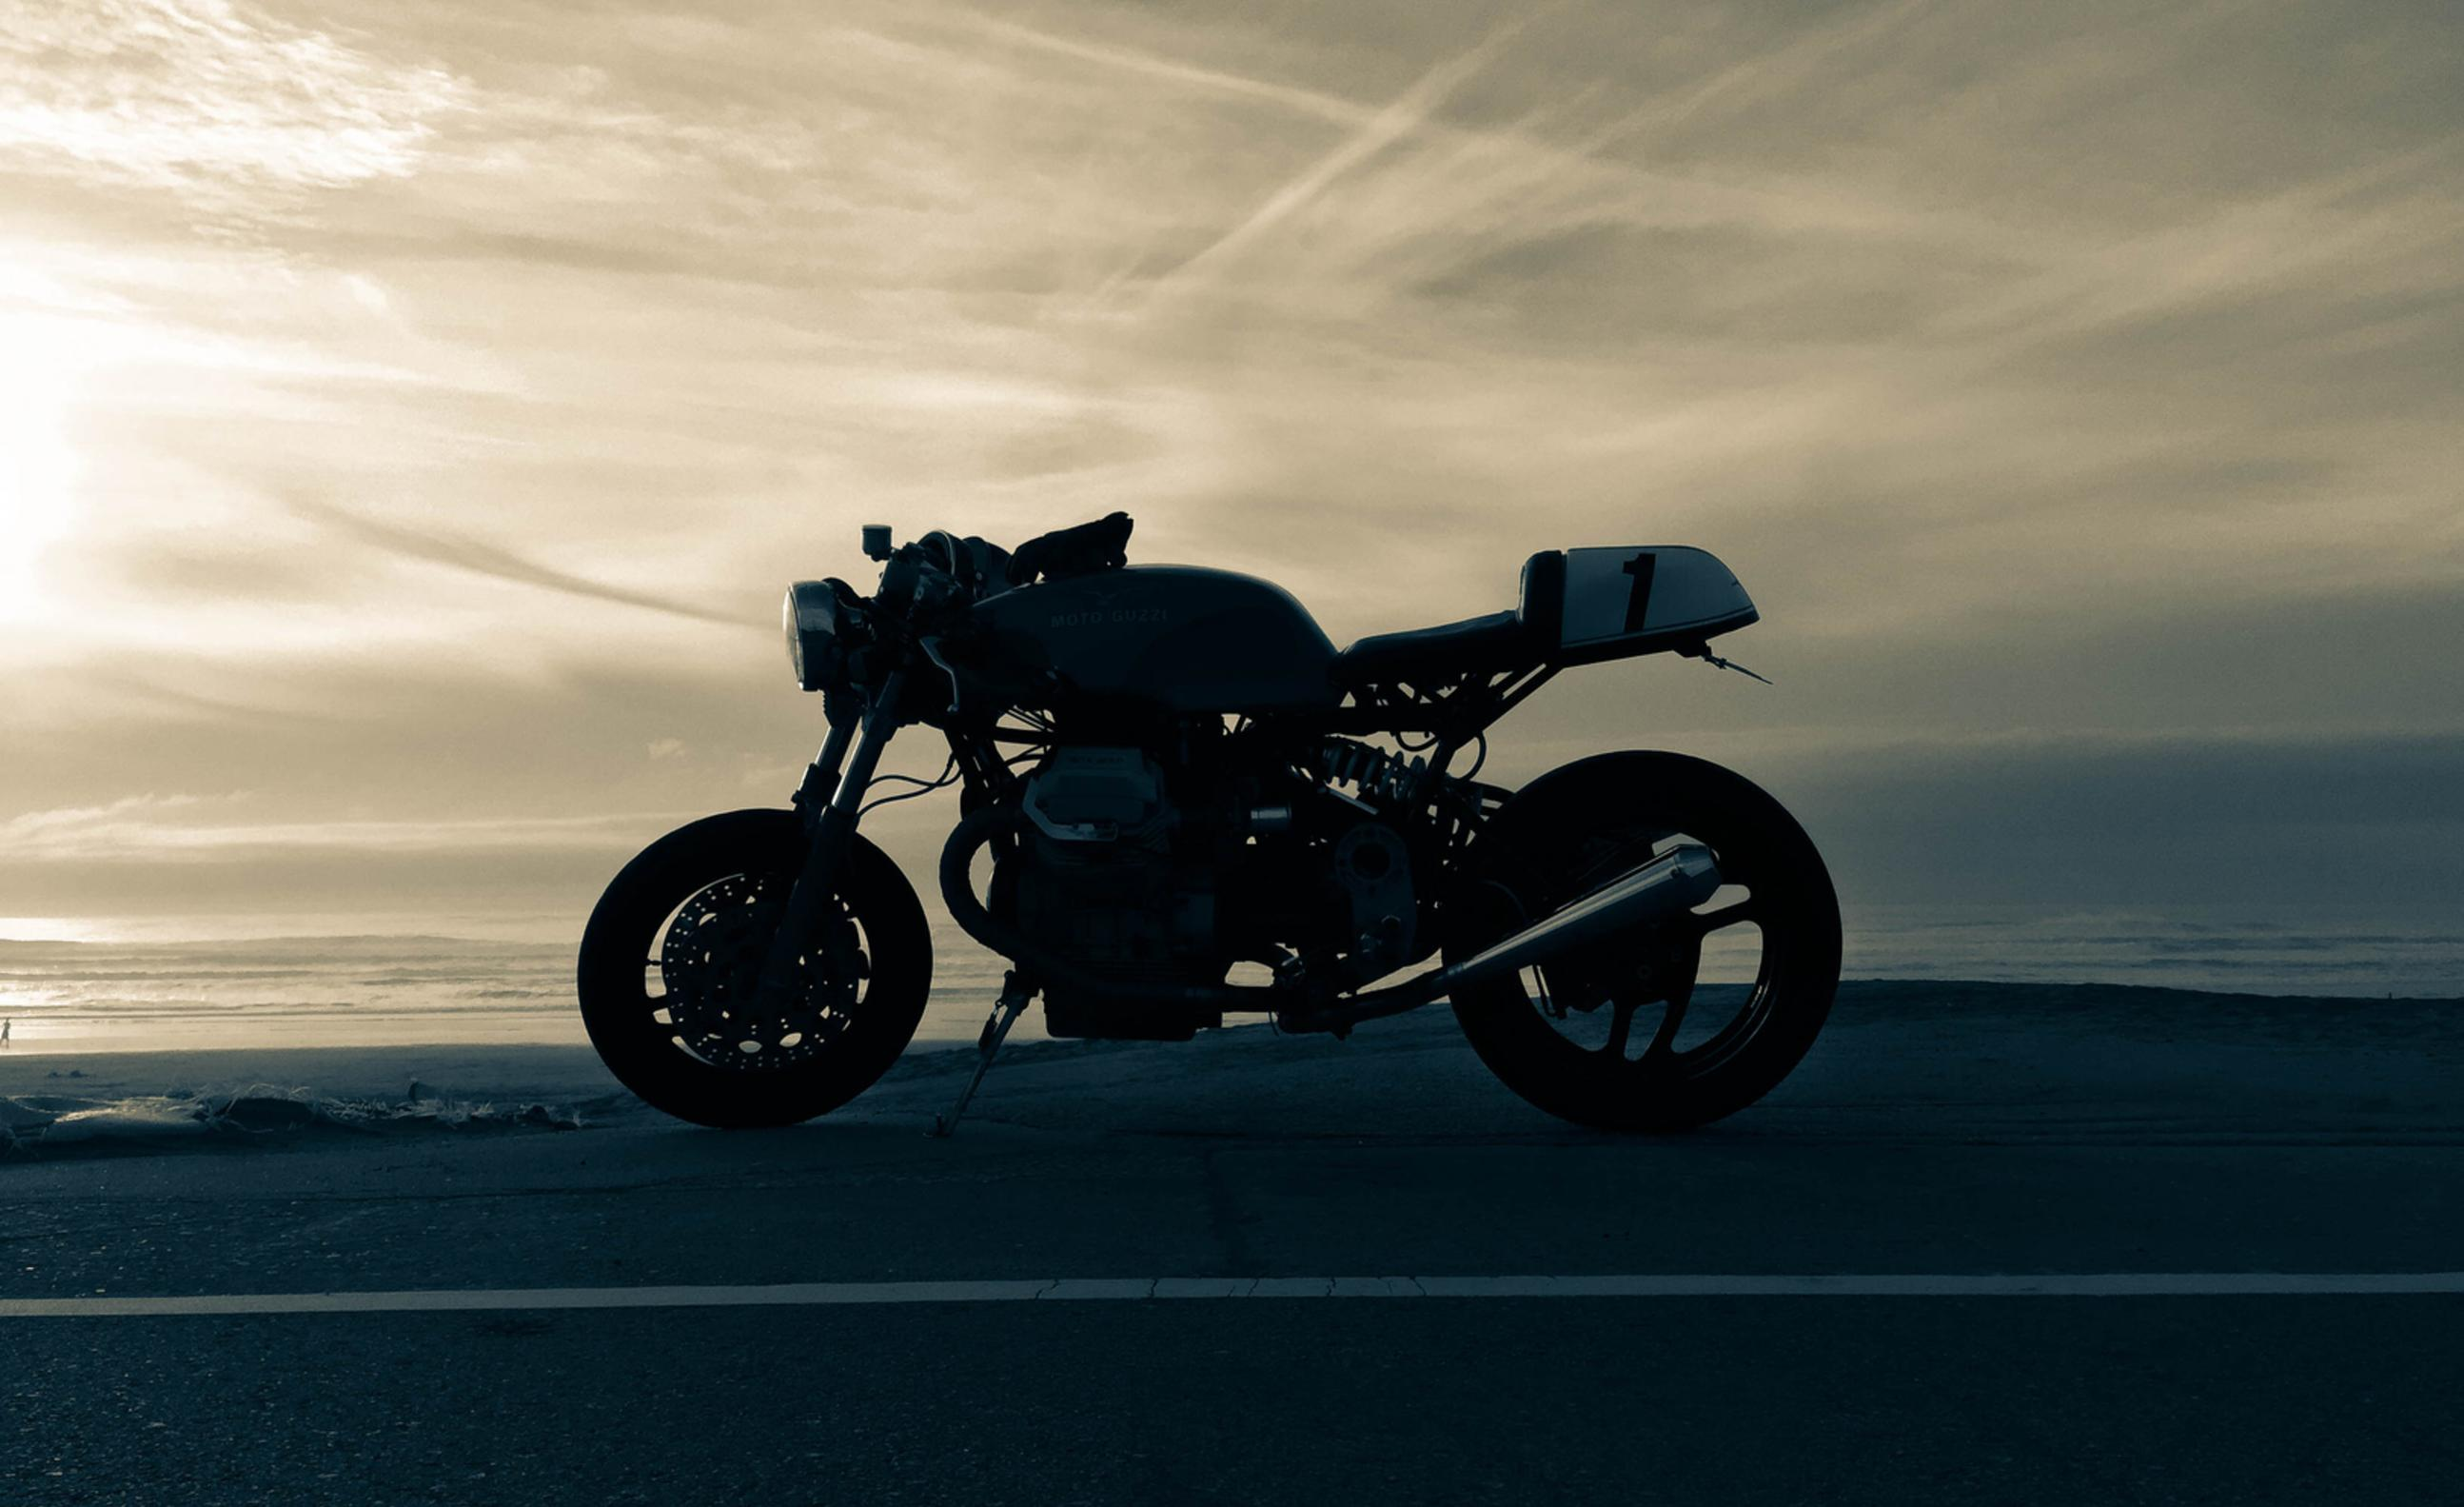 sunset contrast custom cafe racer motorcycle